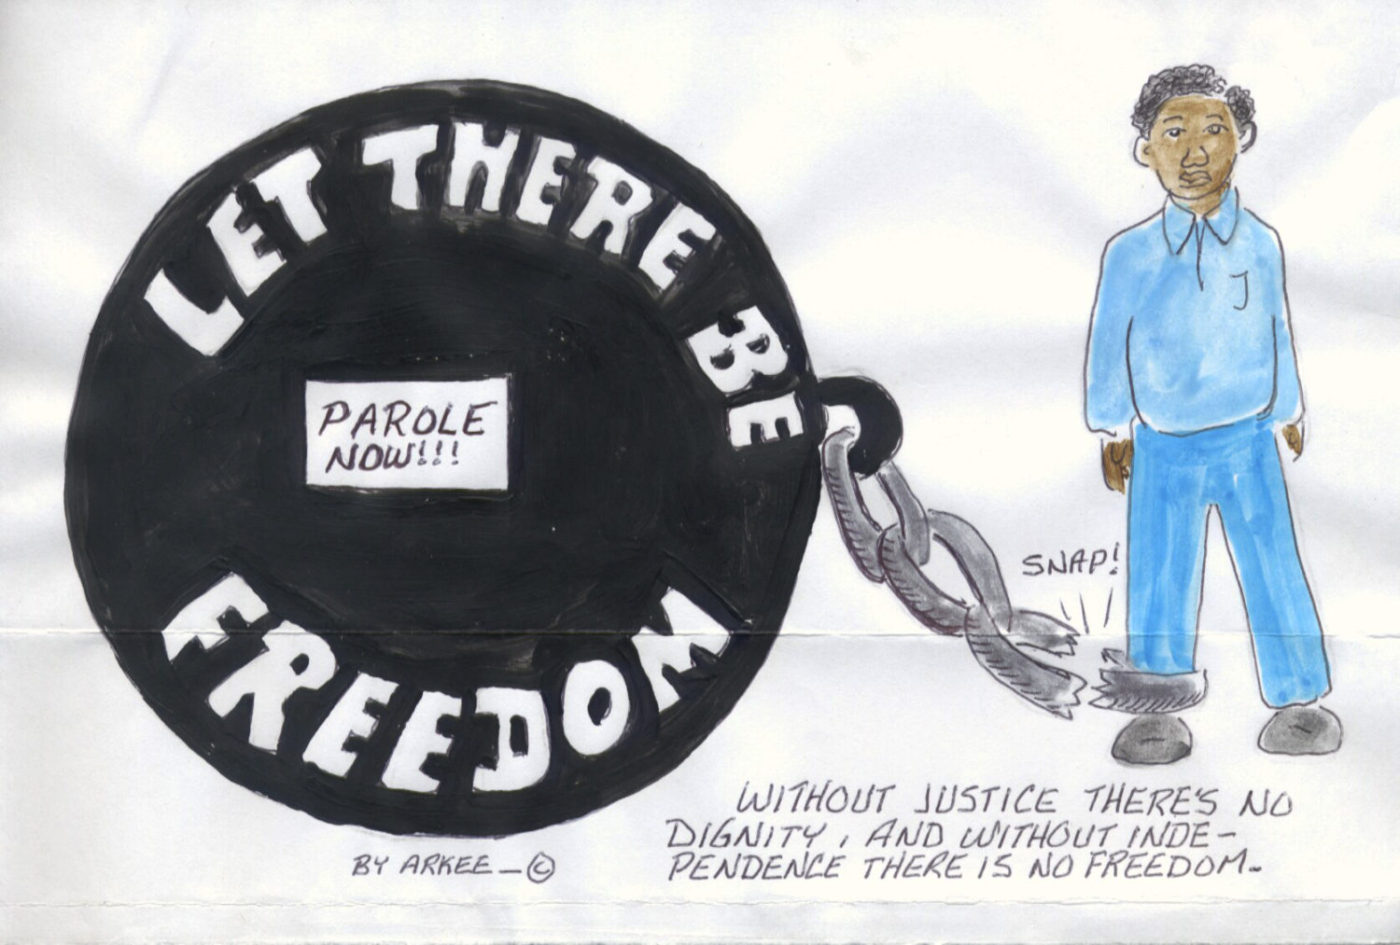 Let-There-Be-Freedom-Parole-Now-art-by-Arkee-Chaney-1400x945, Parole boards – the stumbling block in the offender's stride to freedom, World News & Views